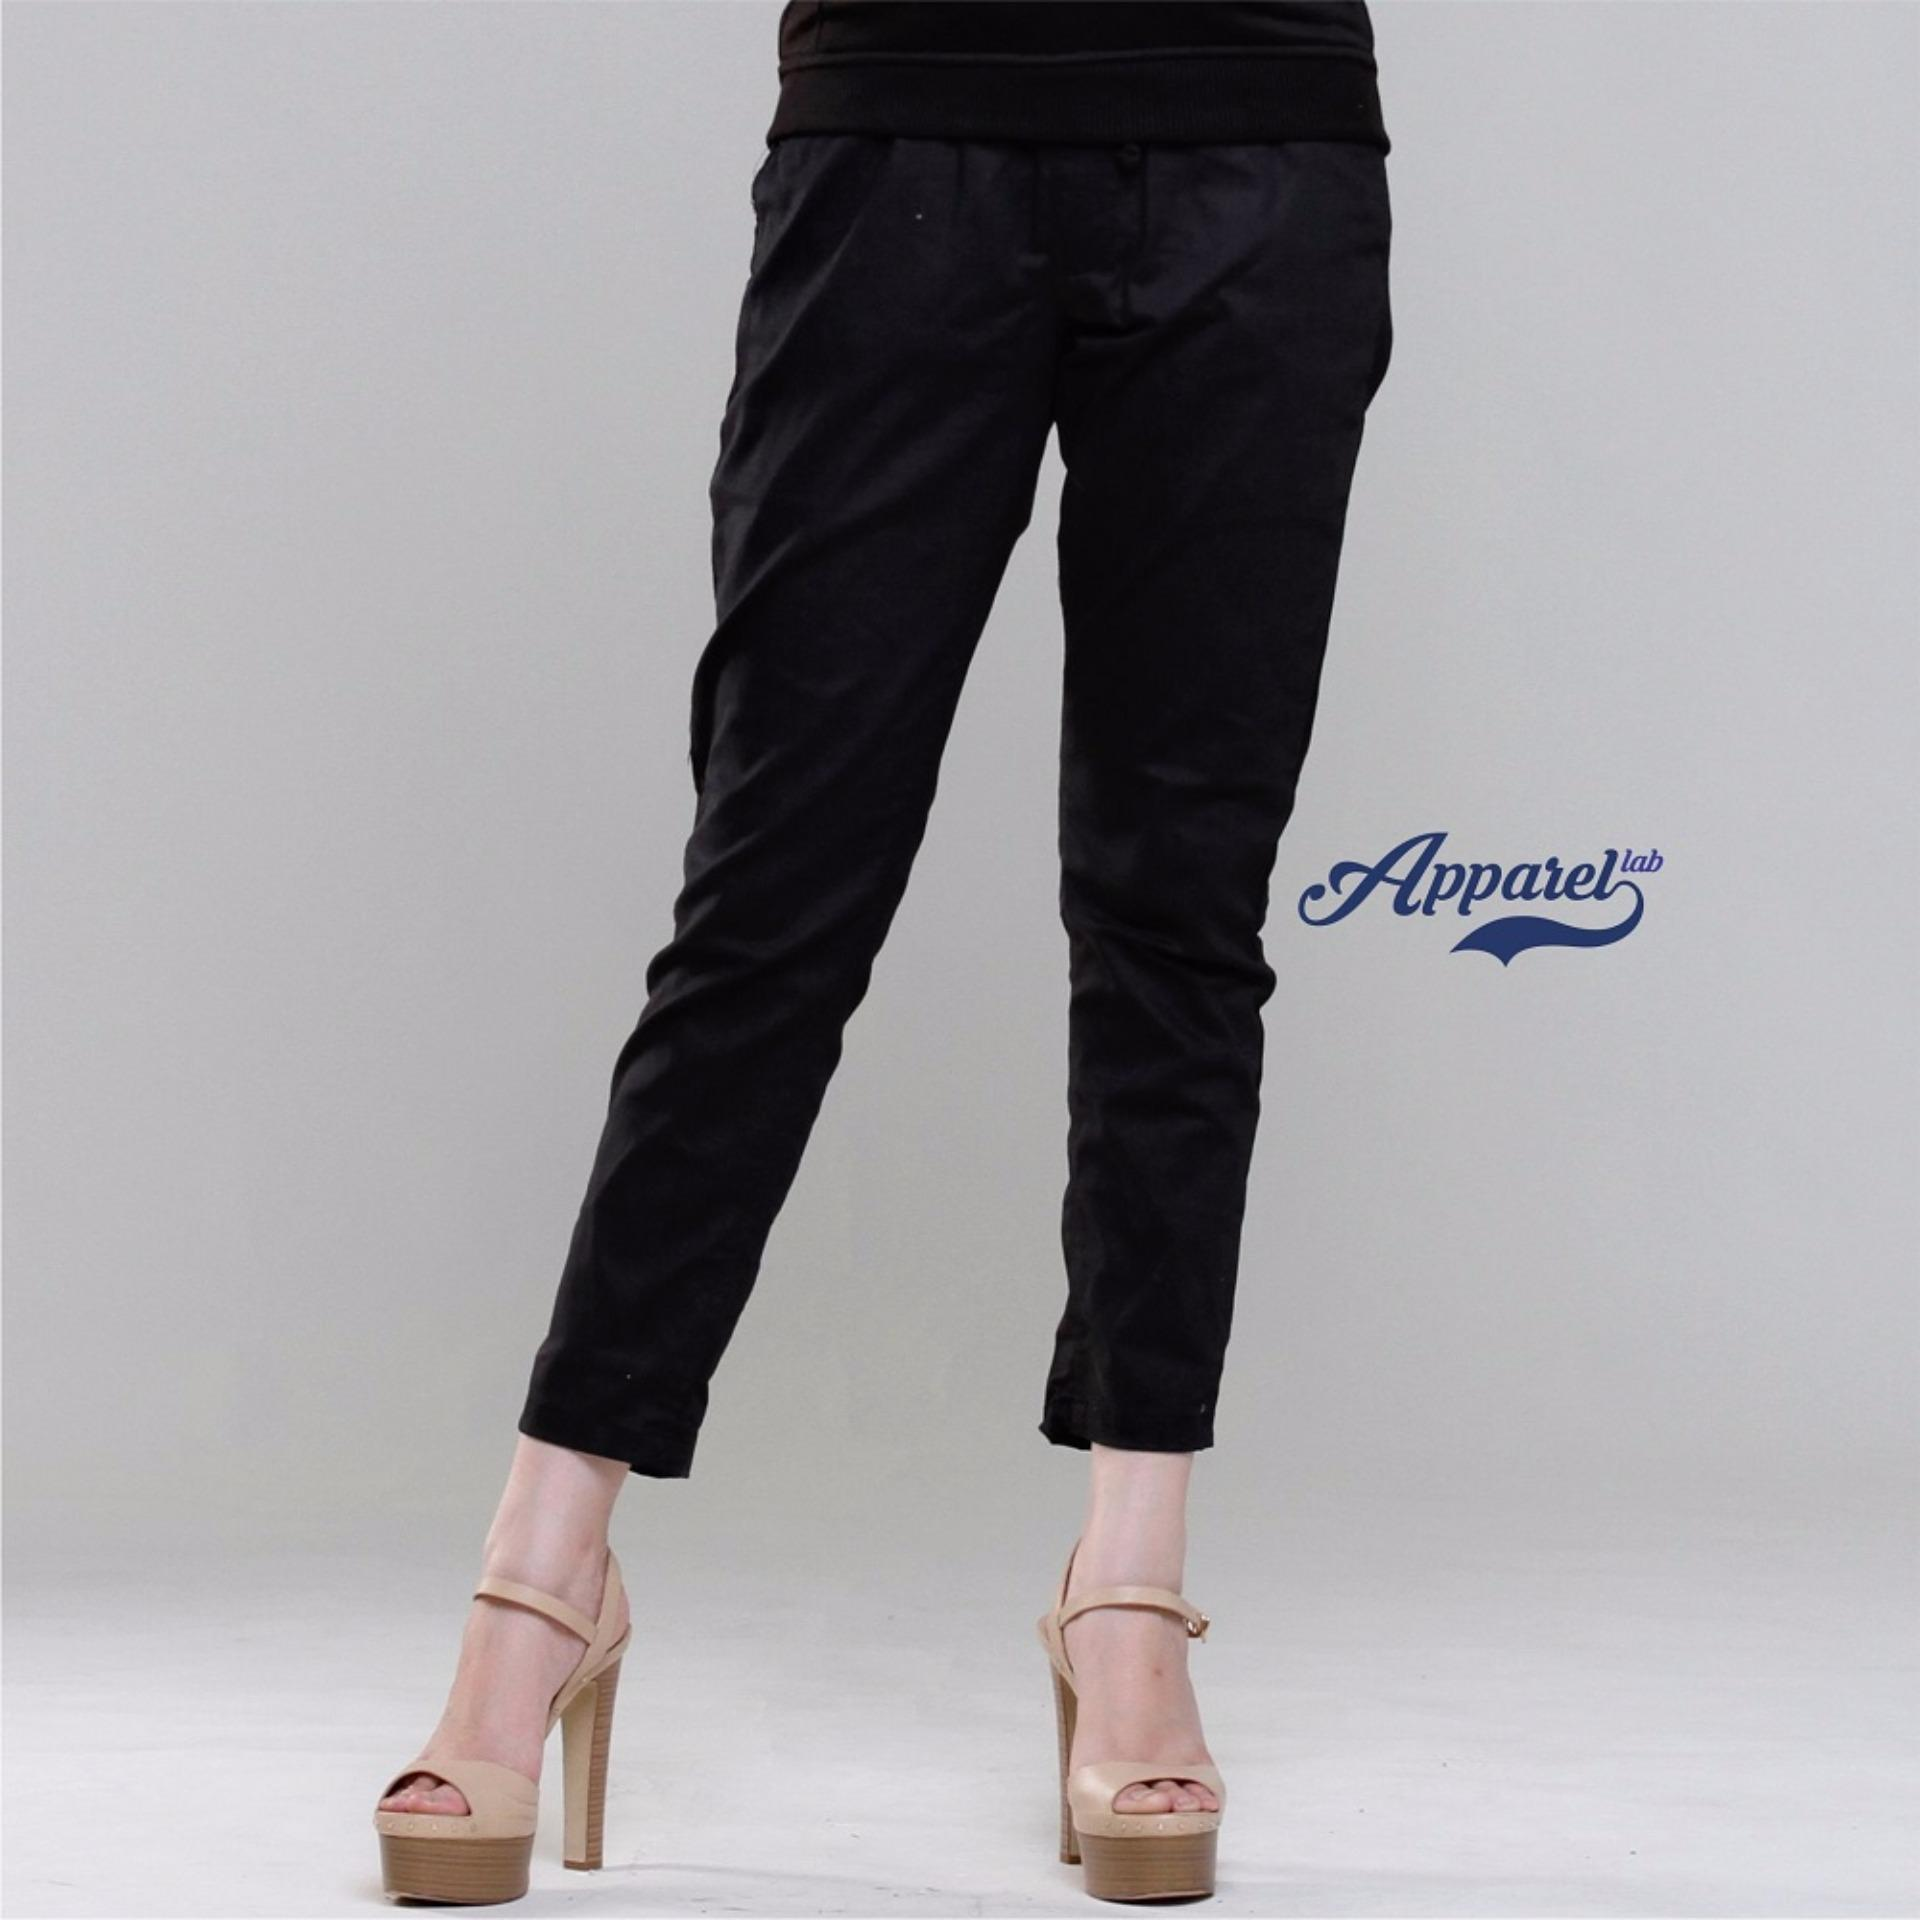 Beli Pinggang Karet Apparel Lab Women Chino Pants Black Apparel Lab Asli